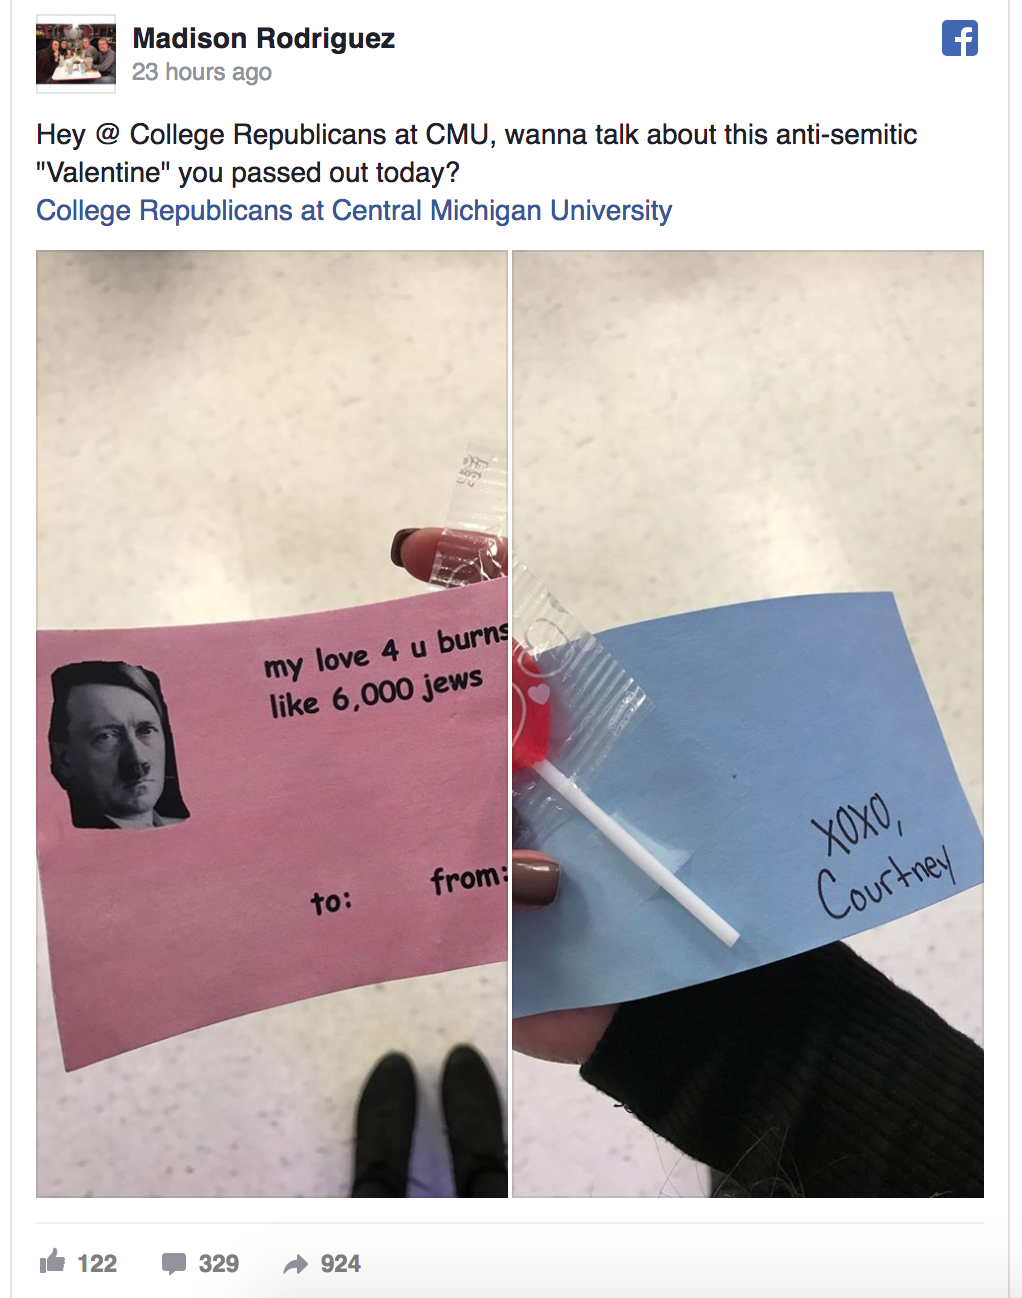 College Republican Group at Central Michigan University Wished A Happy Valentine's Day With A Hitler Joke